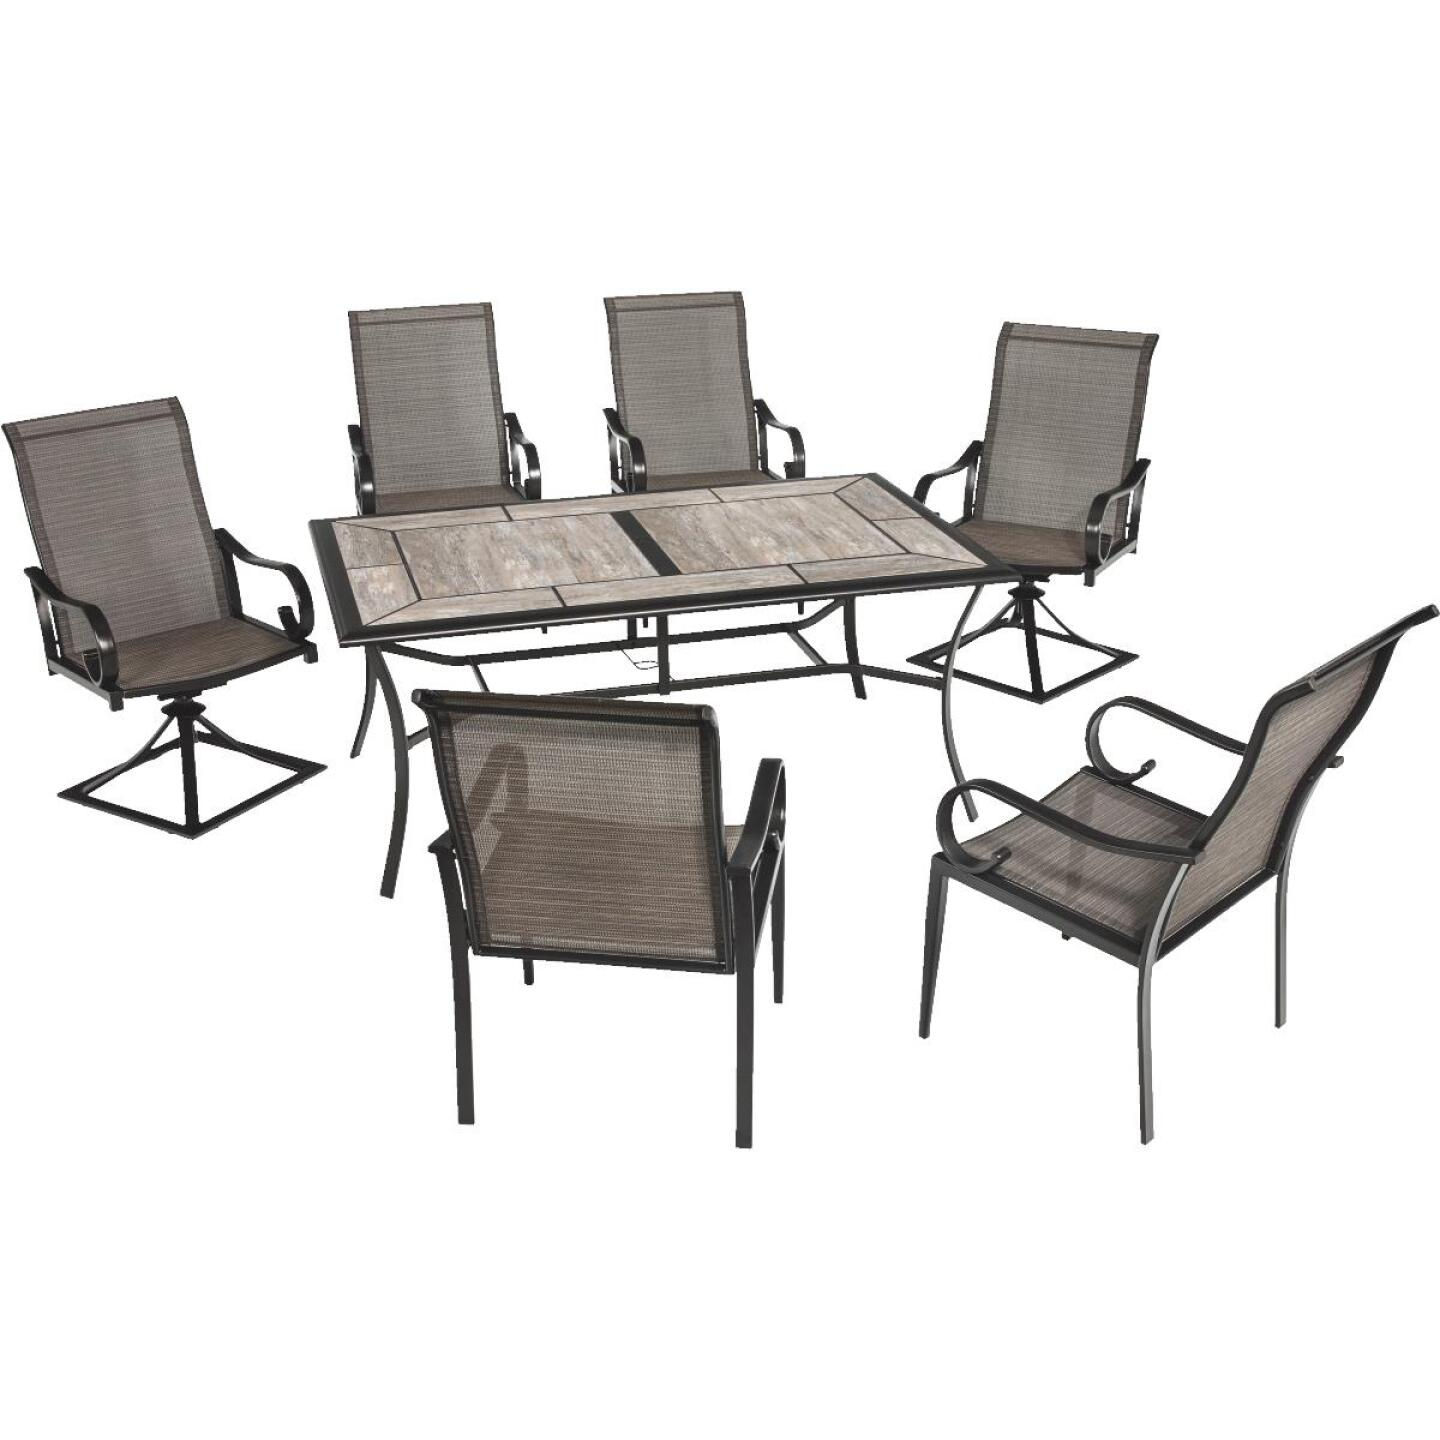 Outdoor Expressions Berkshire 7-Piece Dining Set Image 228